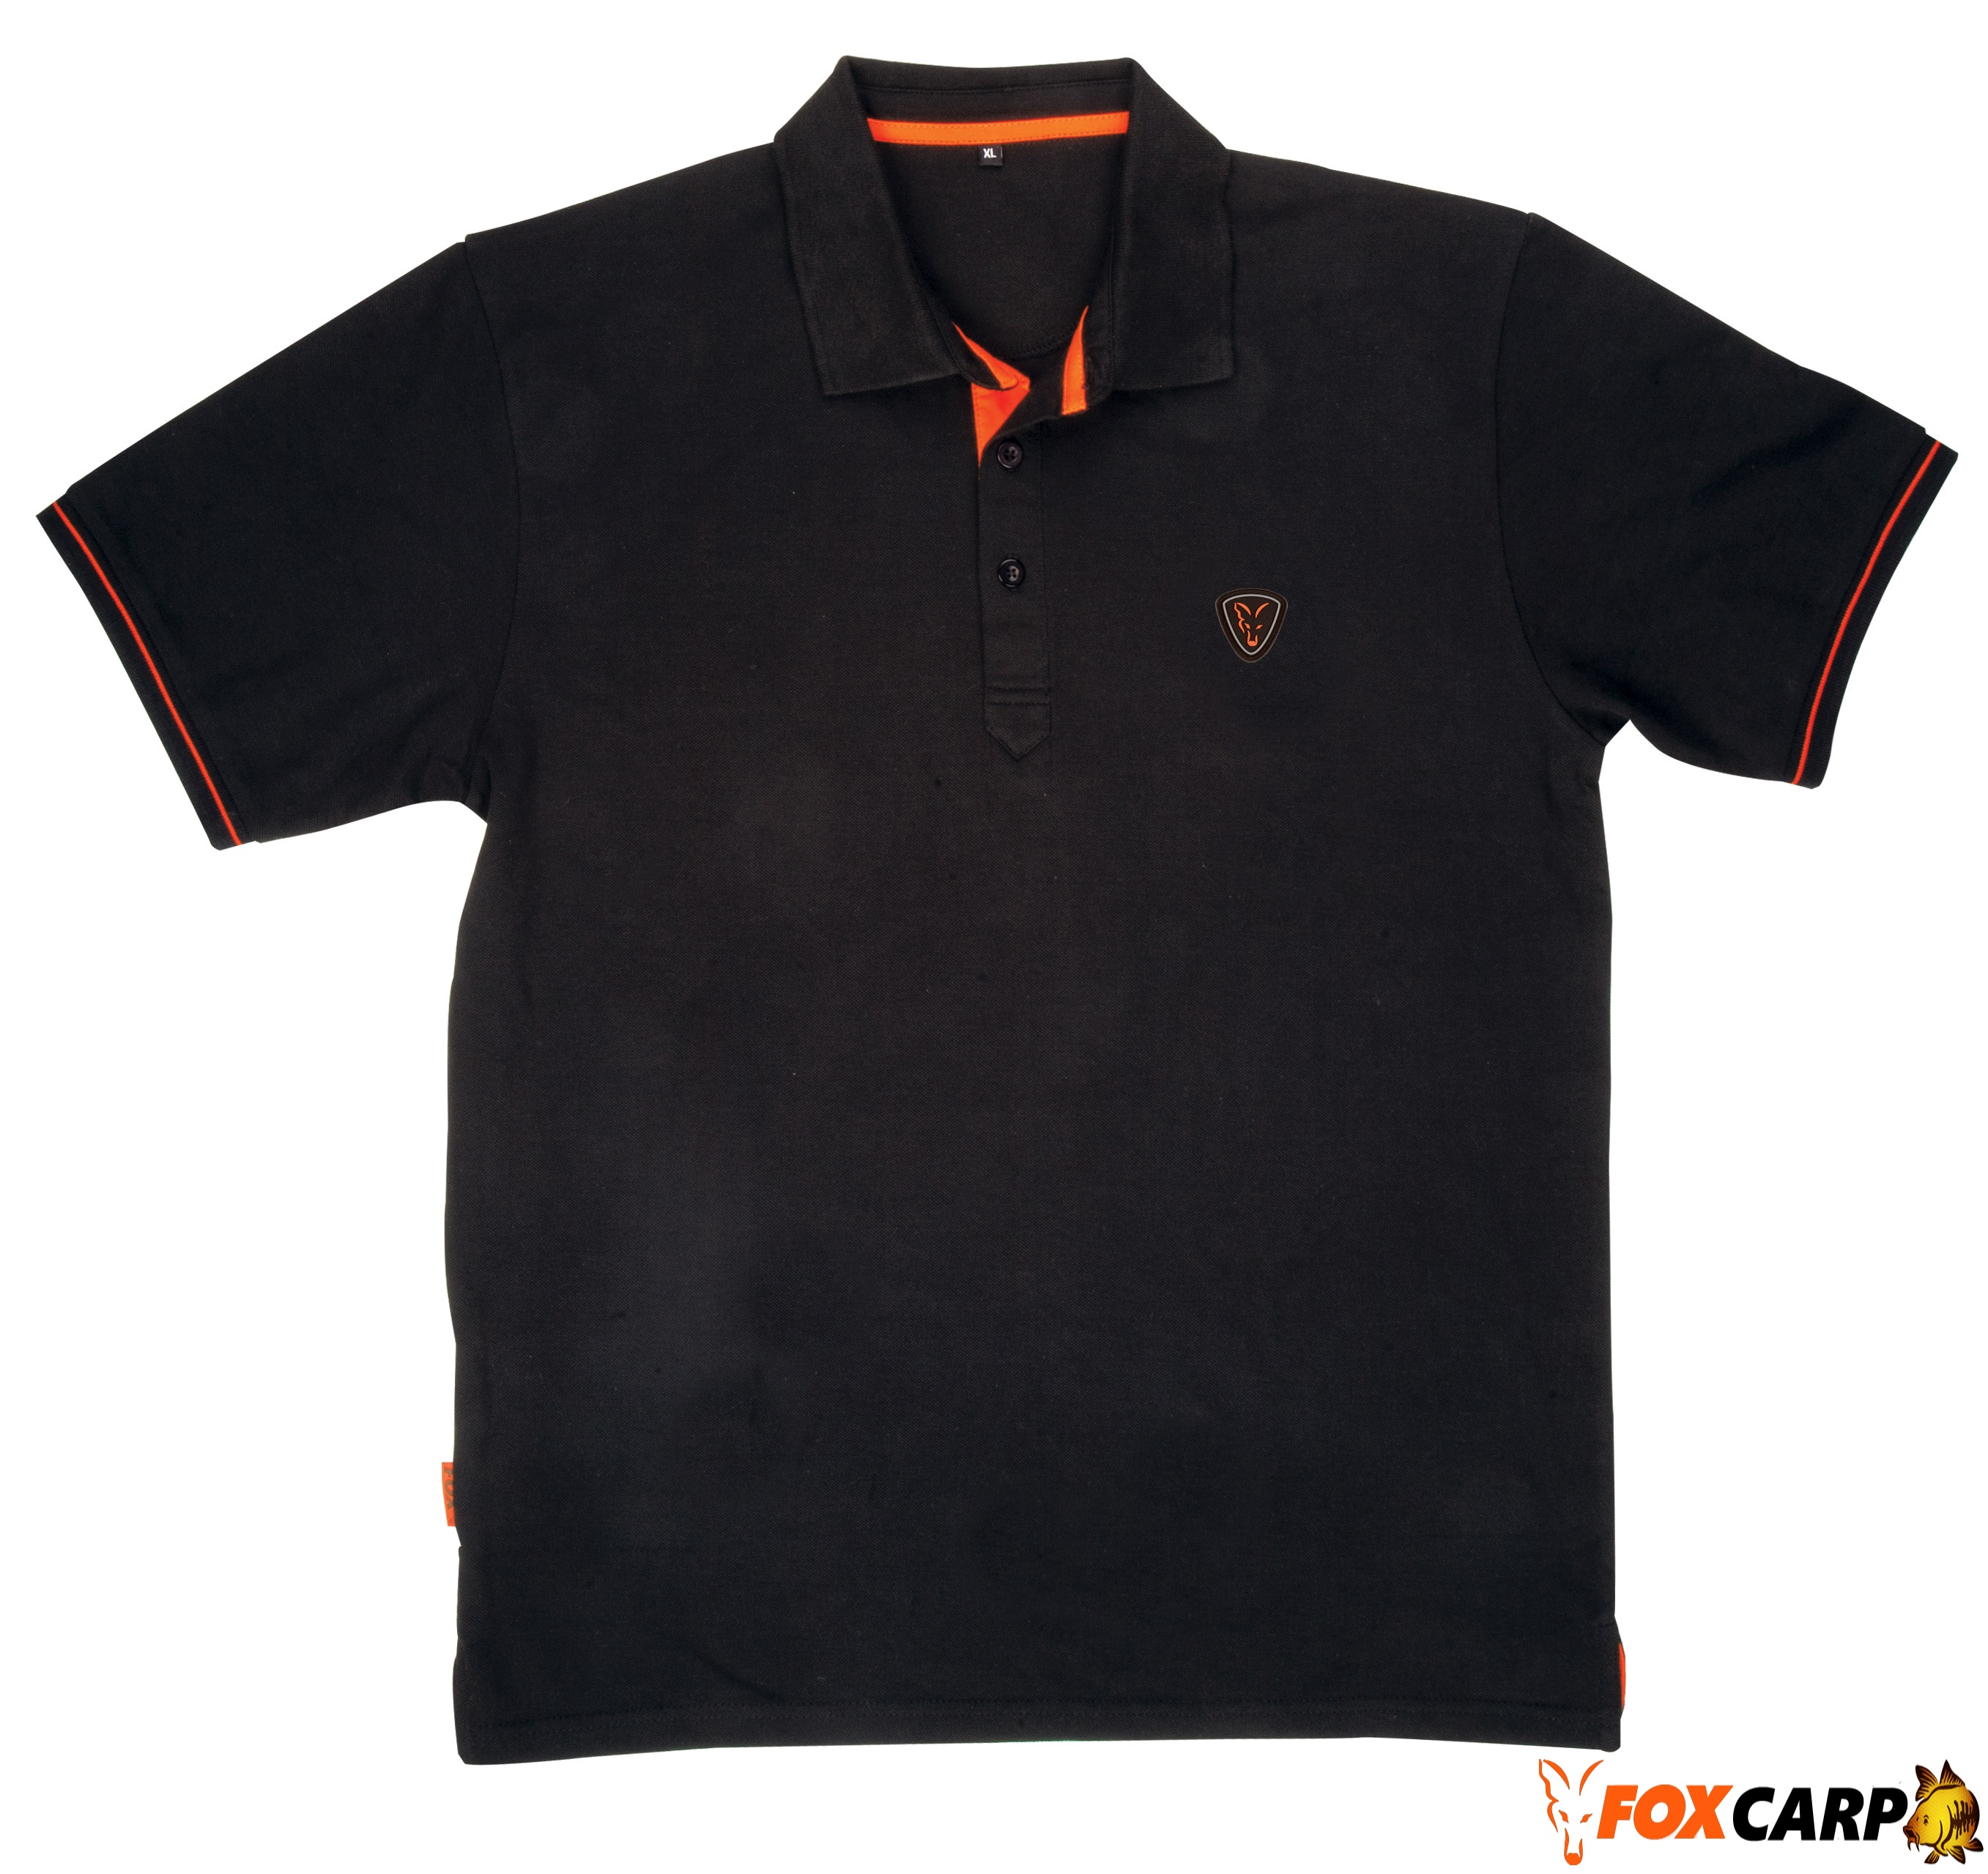 Fox тенниска Black Orange Polo Shirt